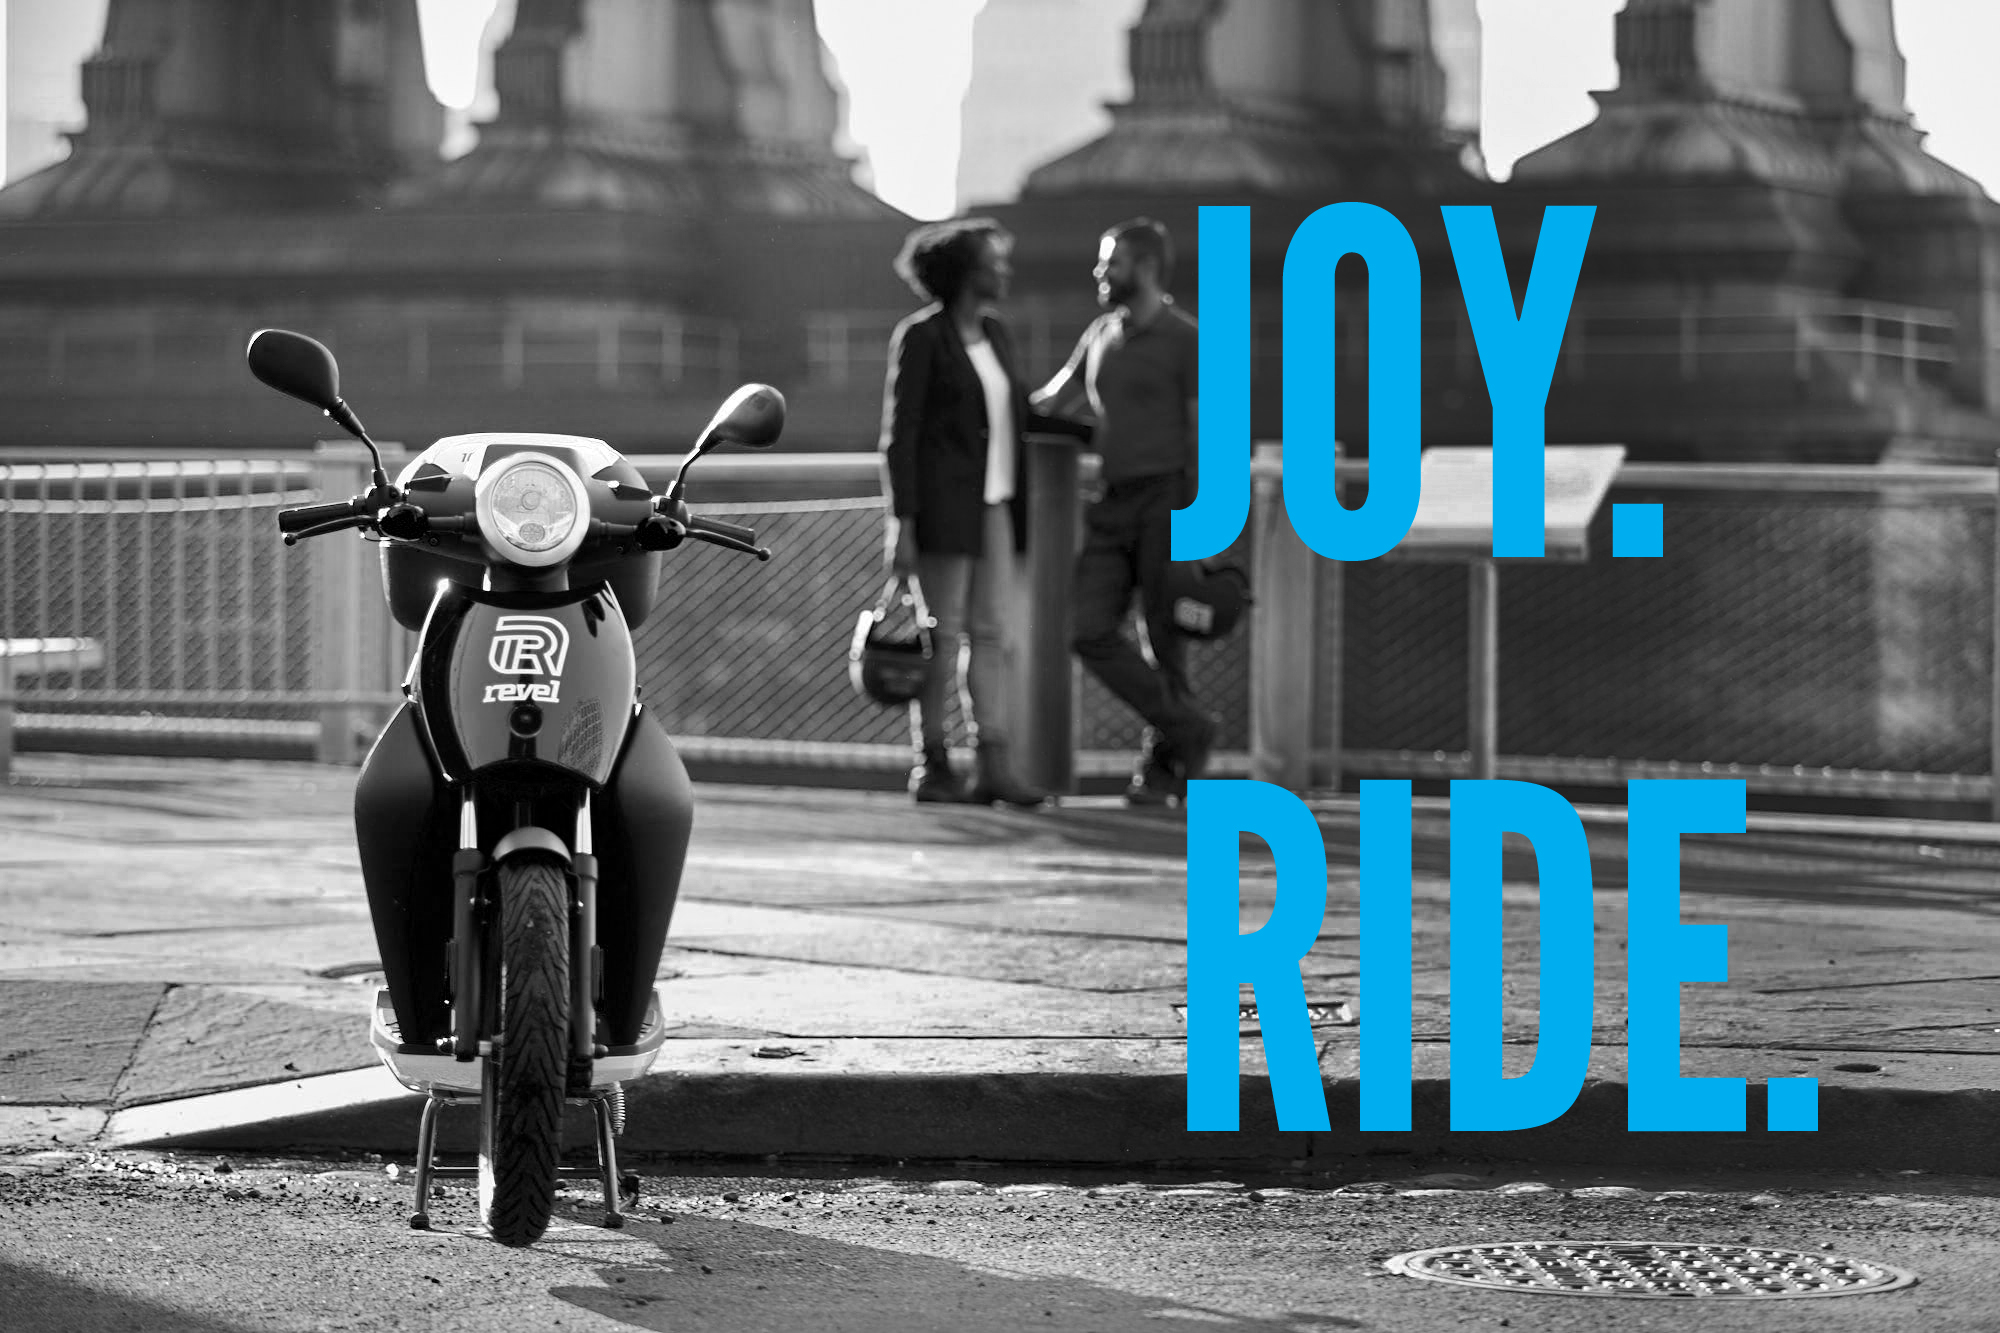 joy ride headline.jpg